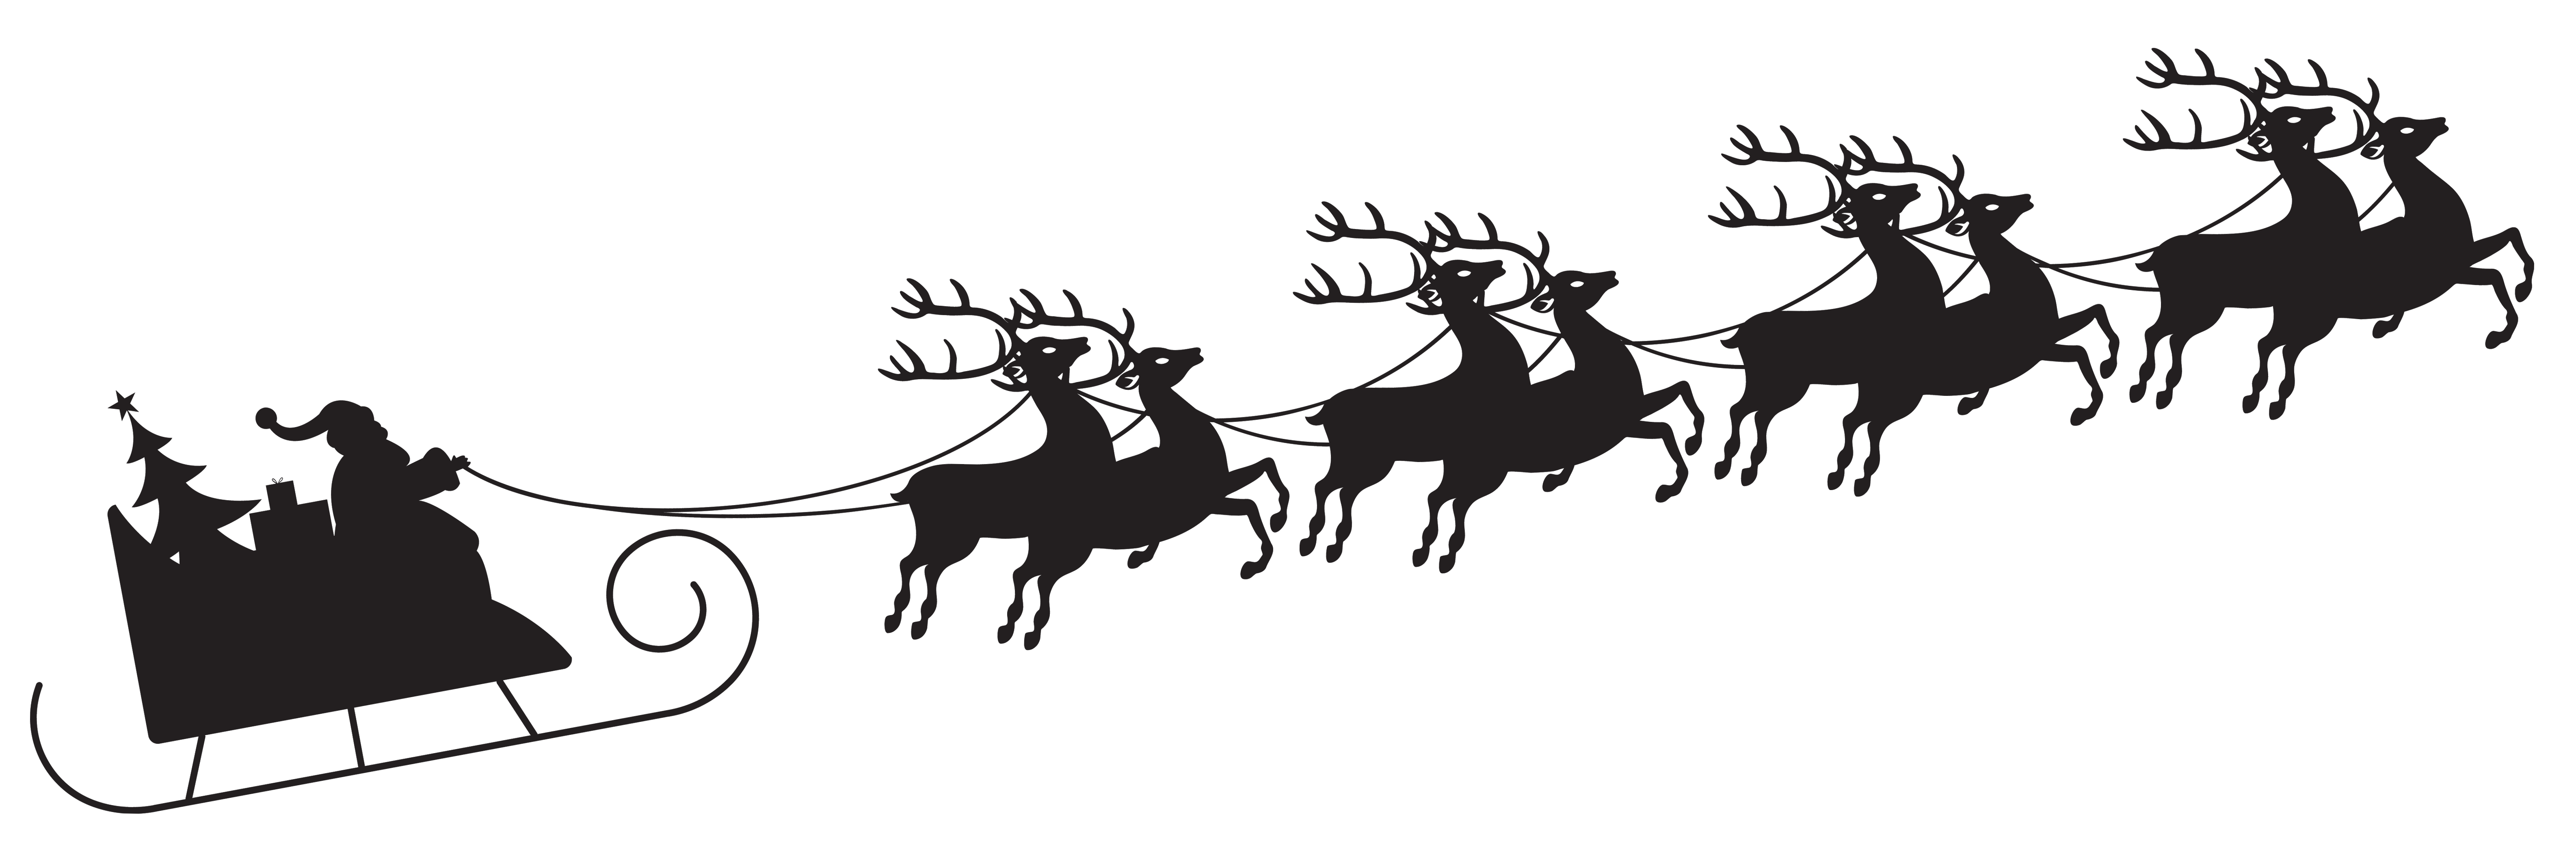 Christmas sleighs clipart png black and white stock Santa with Sleigh Silhouette Transparent PNG Clip Art Image ... png black and white stock